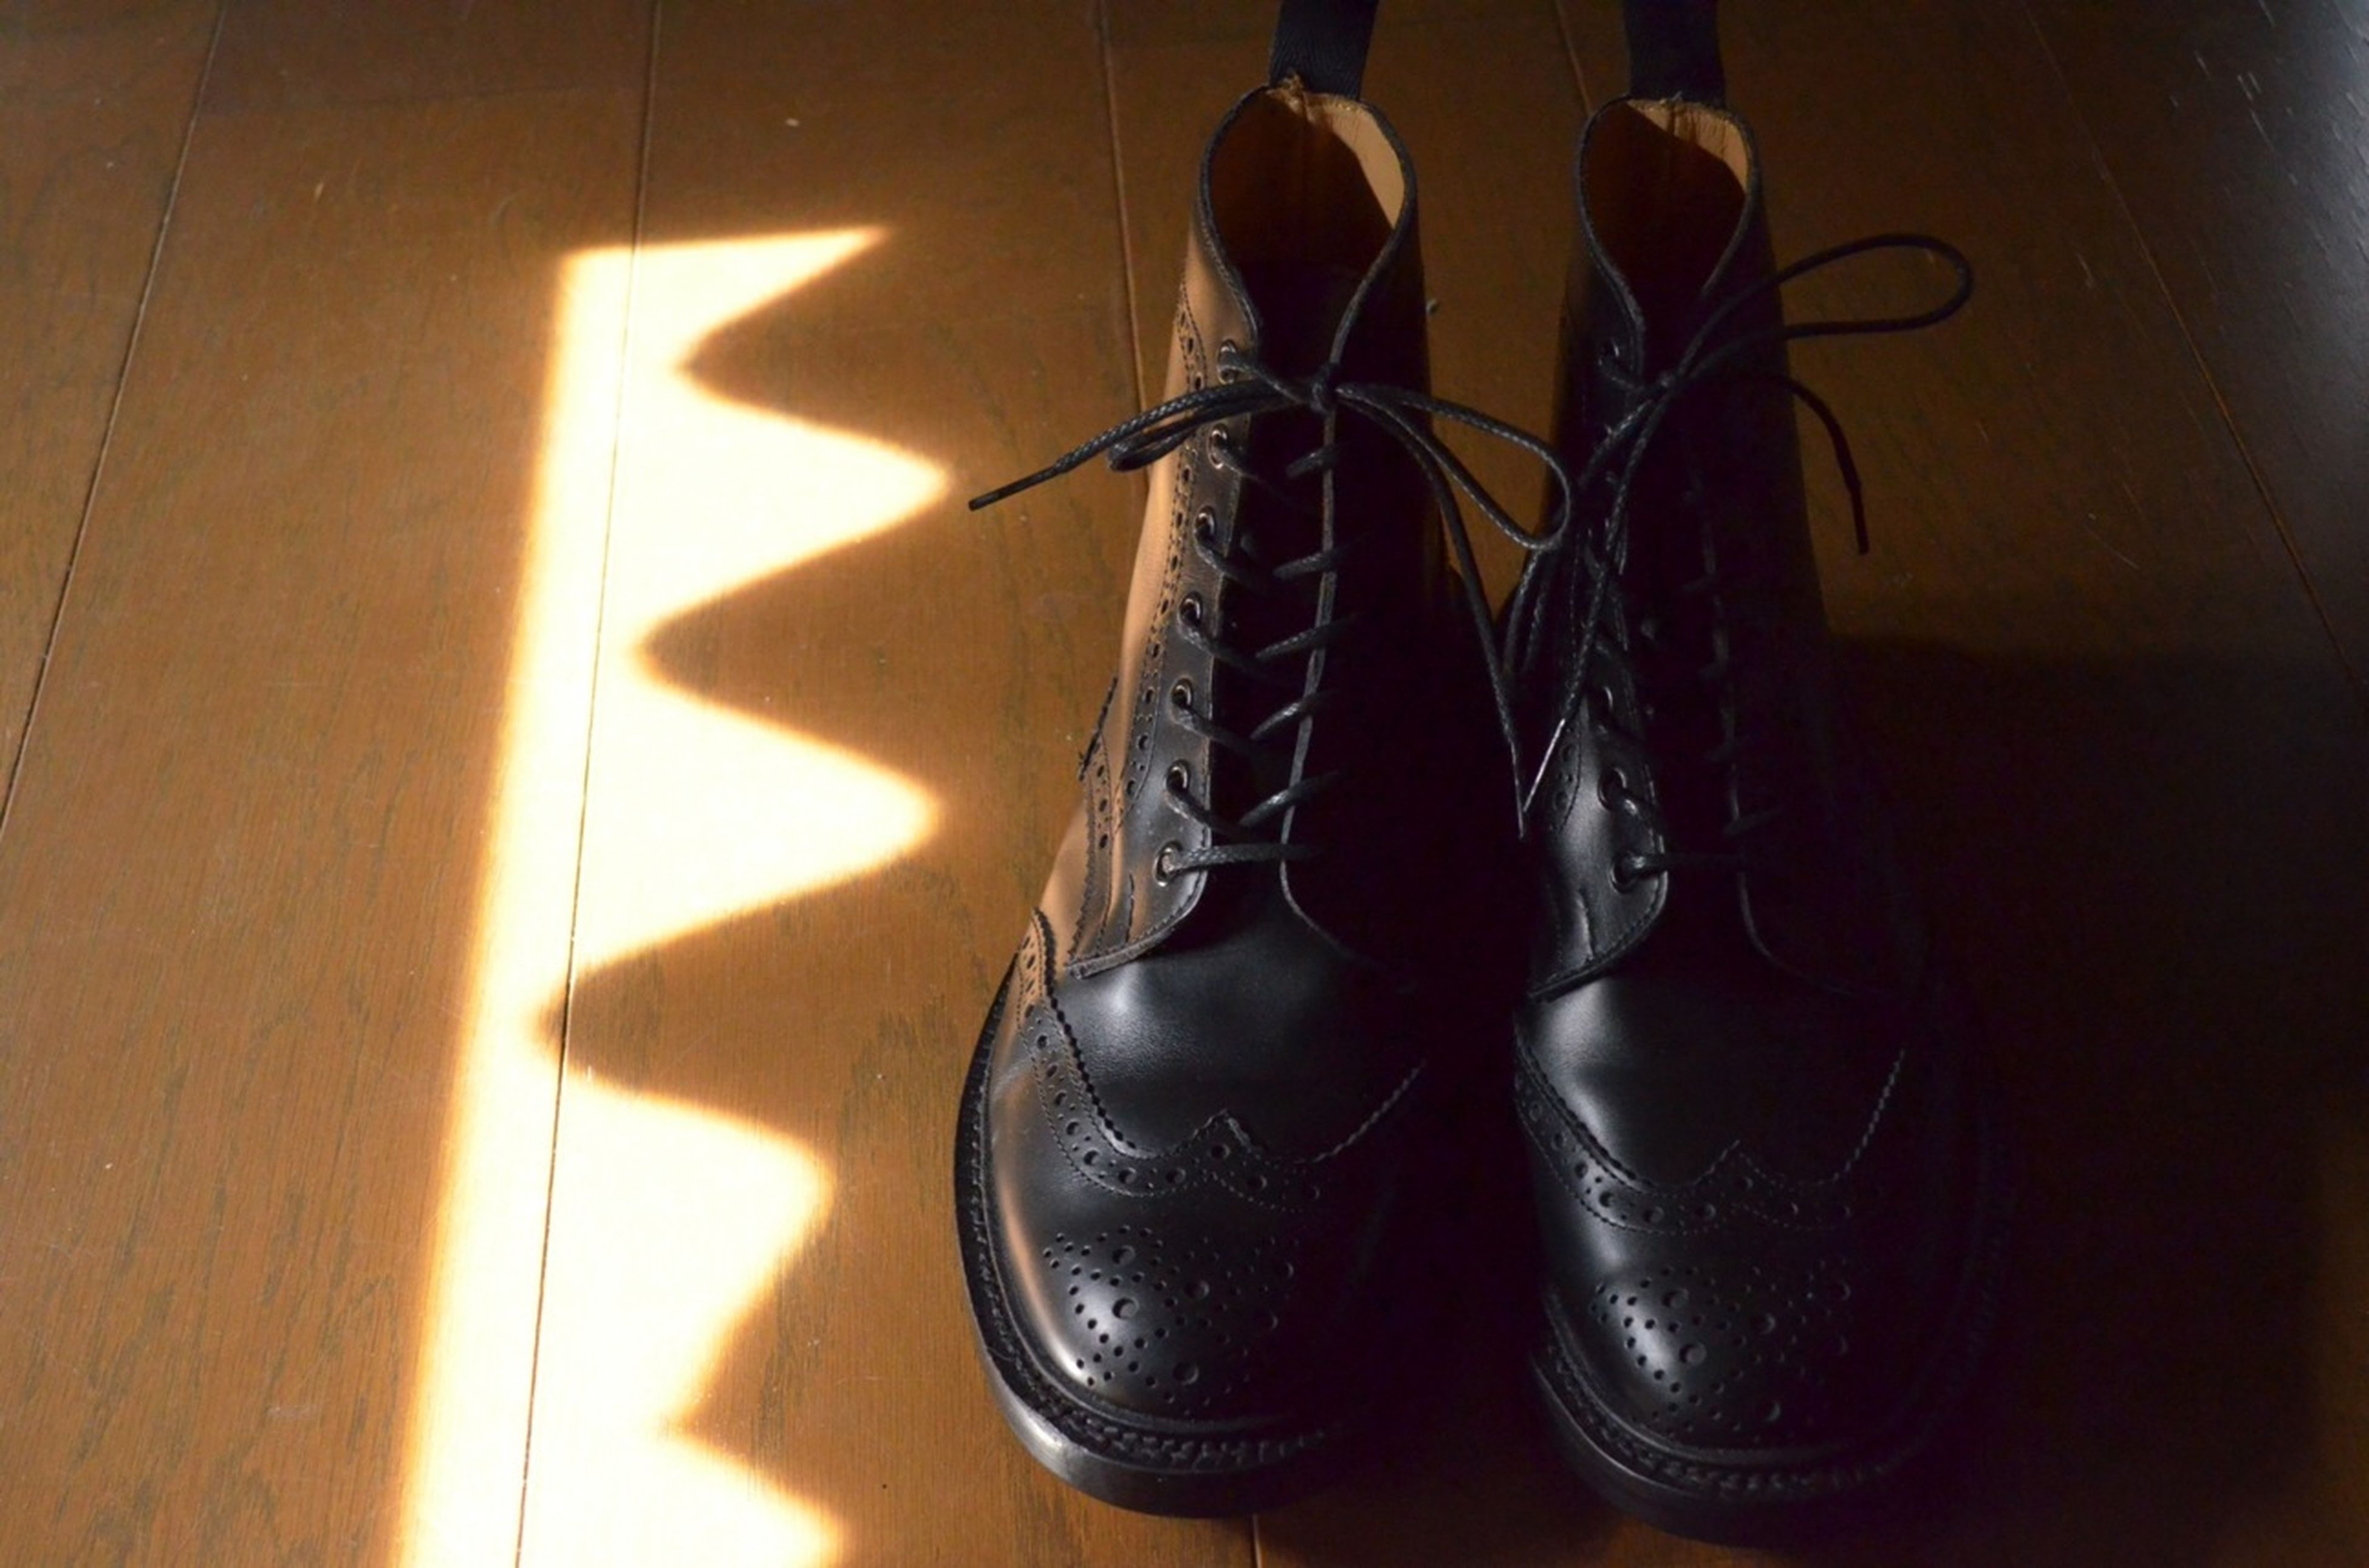 indoors, still life, wall - building feature, home interior, close-up, hanging, no people, high angle view, flooring, electricity, shoe, shadow, table, wall, floor, single object, technology, art and craft, black color, home